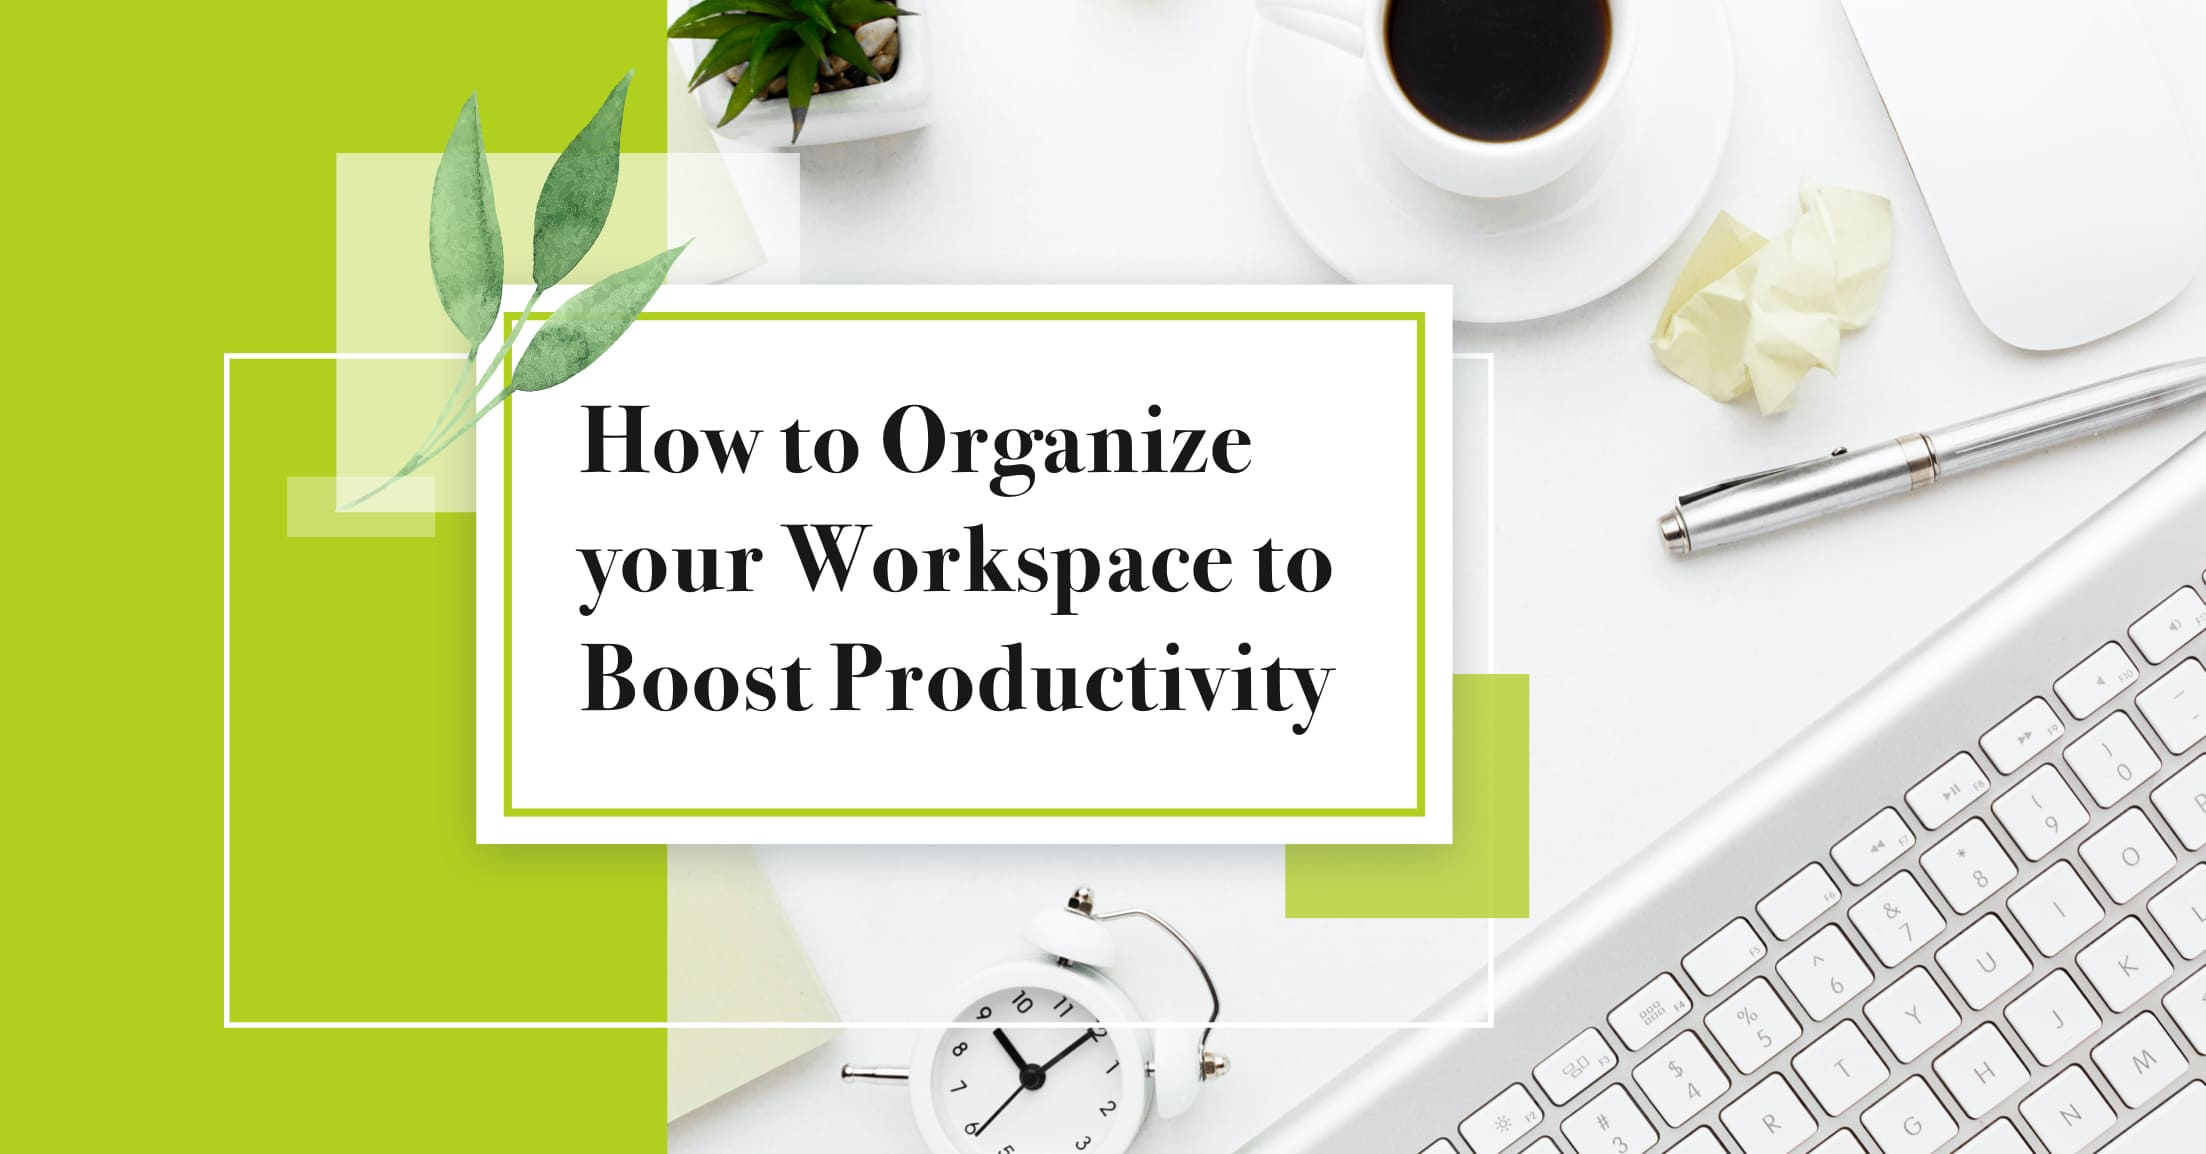 How to organize your workspace to boost productivity?